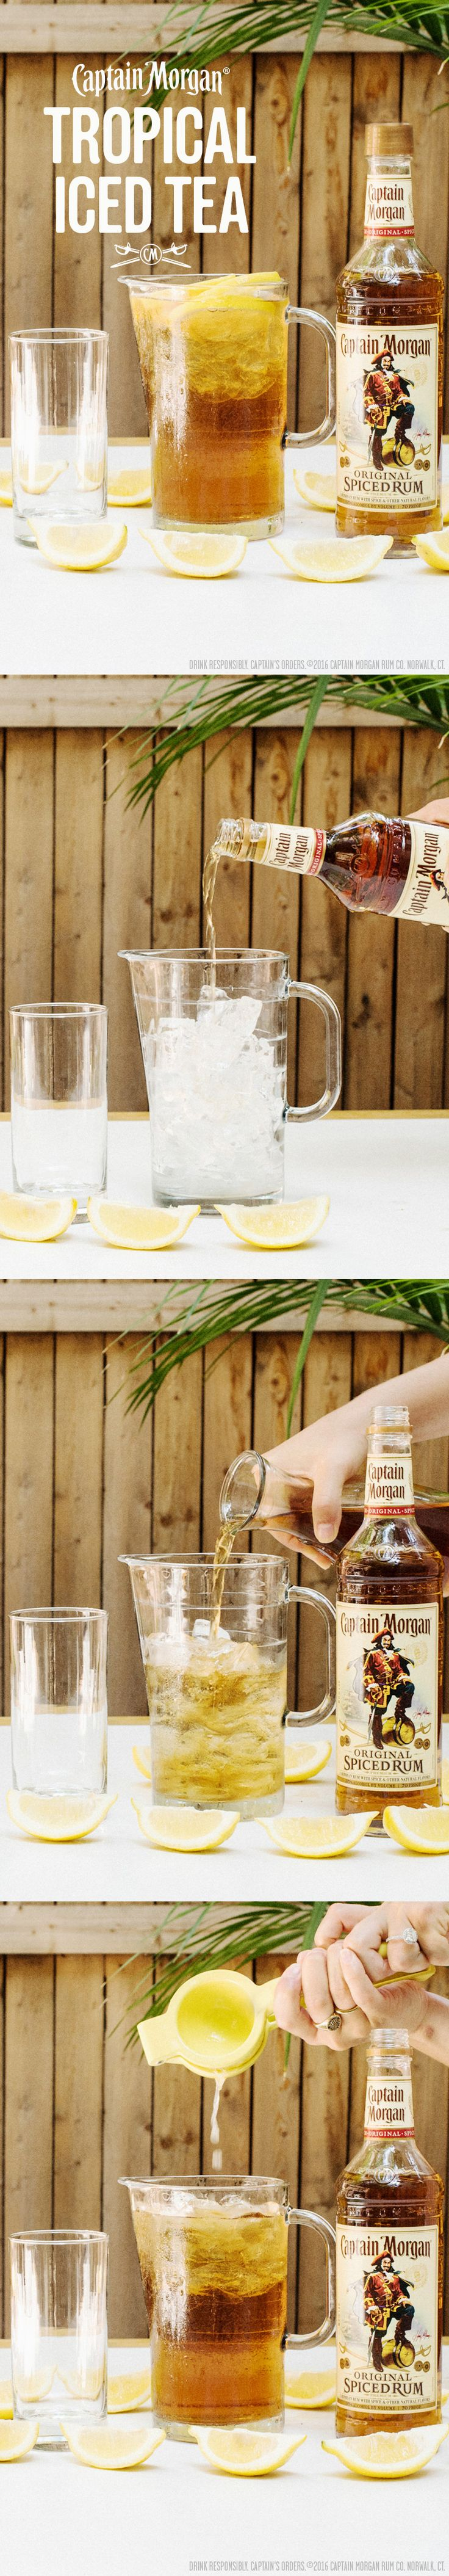 Impress your BBQ guests with this Tropical Iced Tea recipe: 1.5 oz Captain Morgan Original Spiced Rum 5 oz Ice Tea Squeeze of lemon  Get more rum recipes at https://us.captainmorgan.com/rum-cocktails/?utm_source=pinterest&utm_medium=social&utm_term=bbq&utm_content=tropical_tea&utm_campaign=recipe